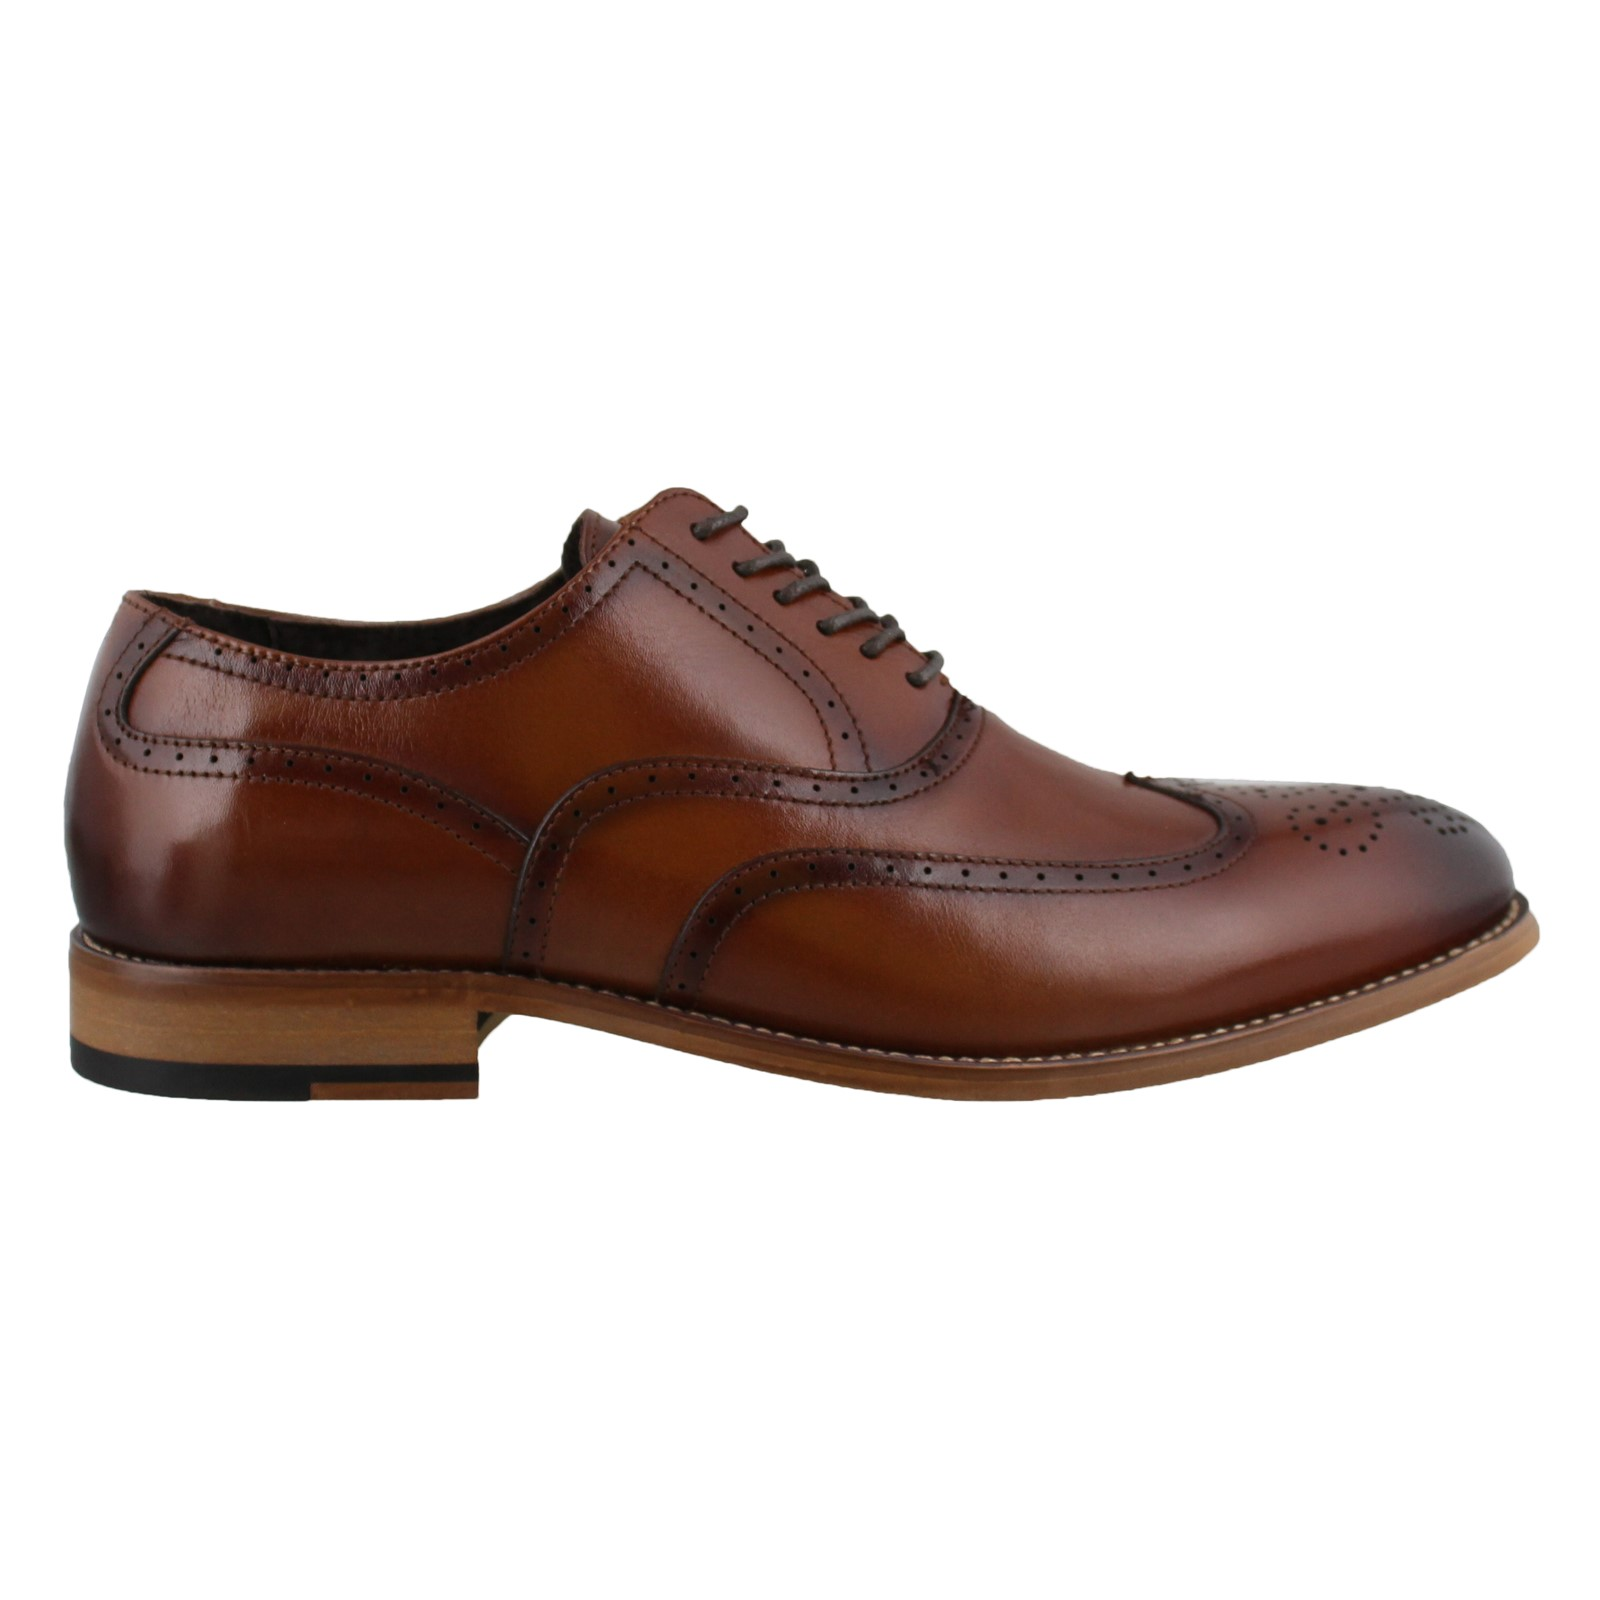 Men's Stacy Adams, Dunbar Lace up Wingtip Oxfords